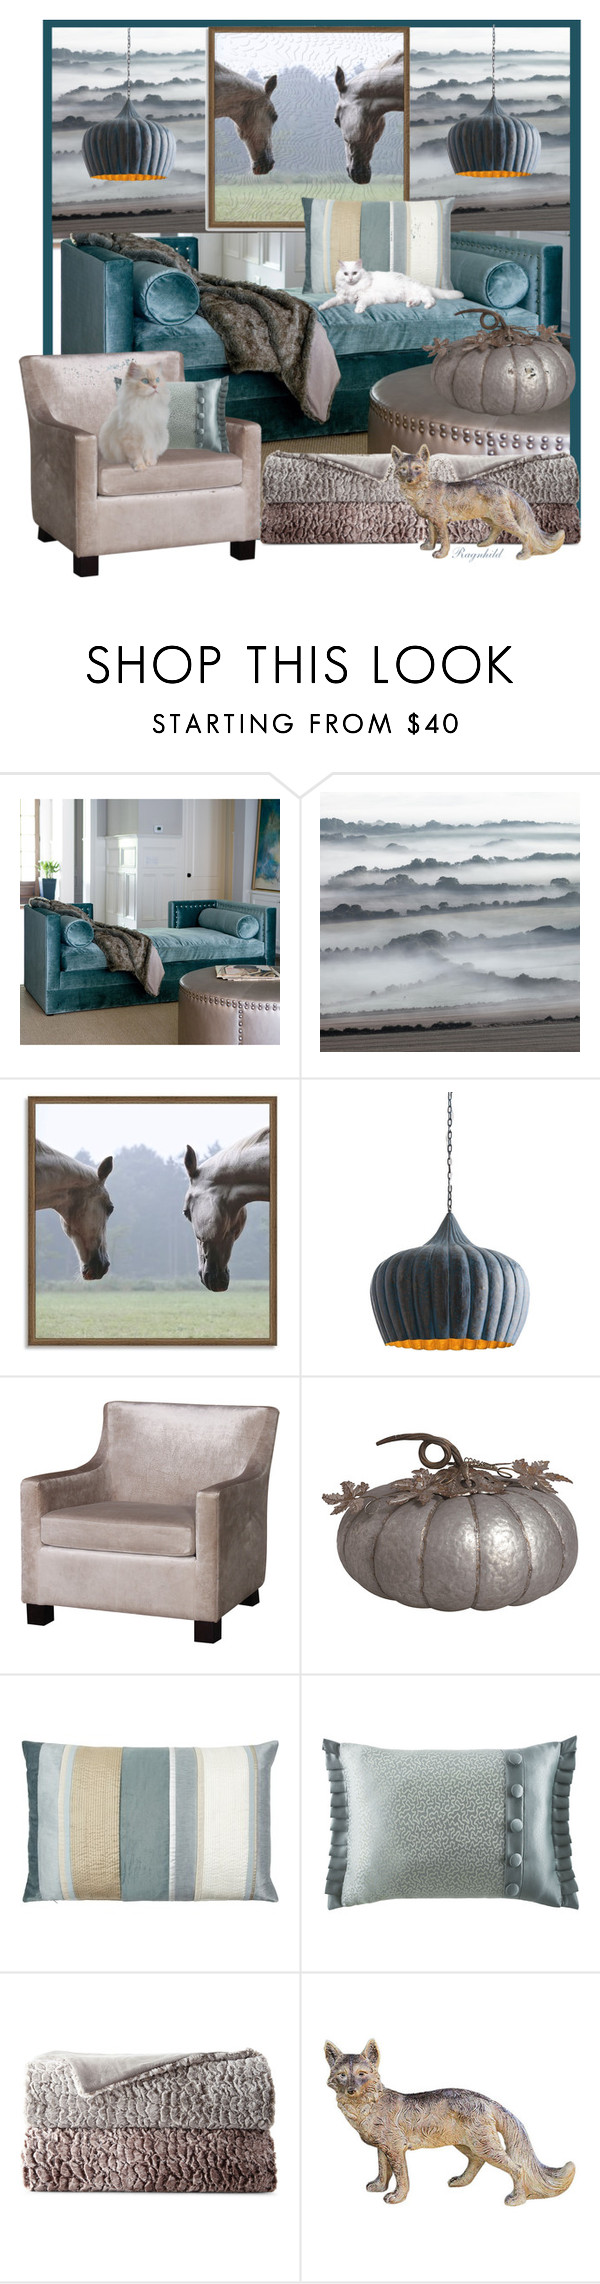 """""""Relaxing"""" by ragnh-mjos ❤ liked on Polyvore featuring interior, interiors, interior design, home, home decor, interior decorating, Regina-Andrew Design, West Elm, Arteriors and Transpac"""